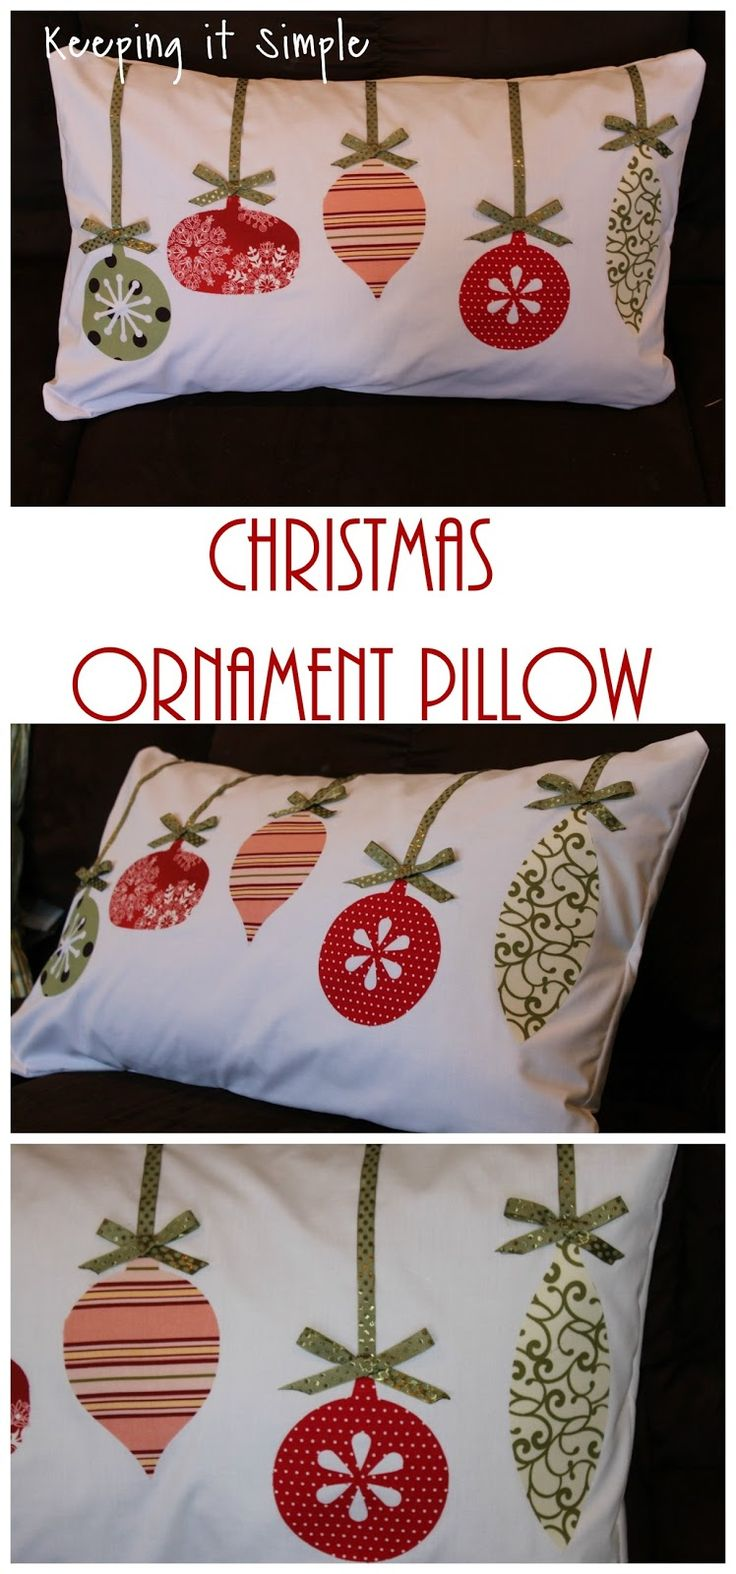 Christmas Pillow Idea- Fabricornament pillow Más